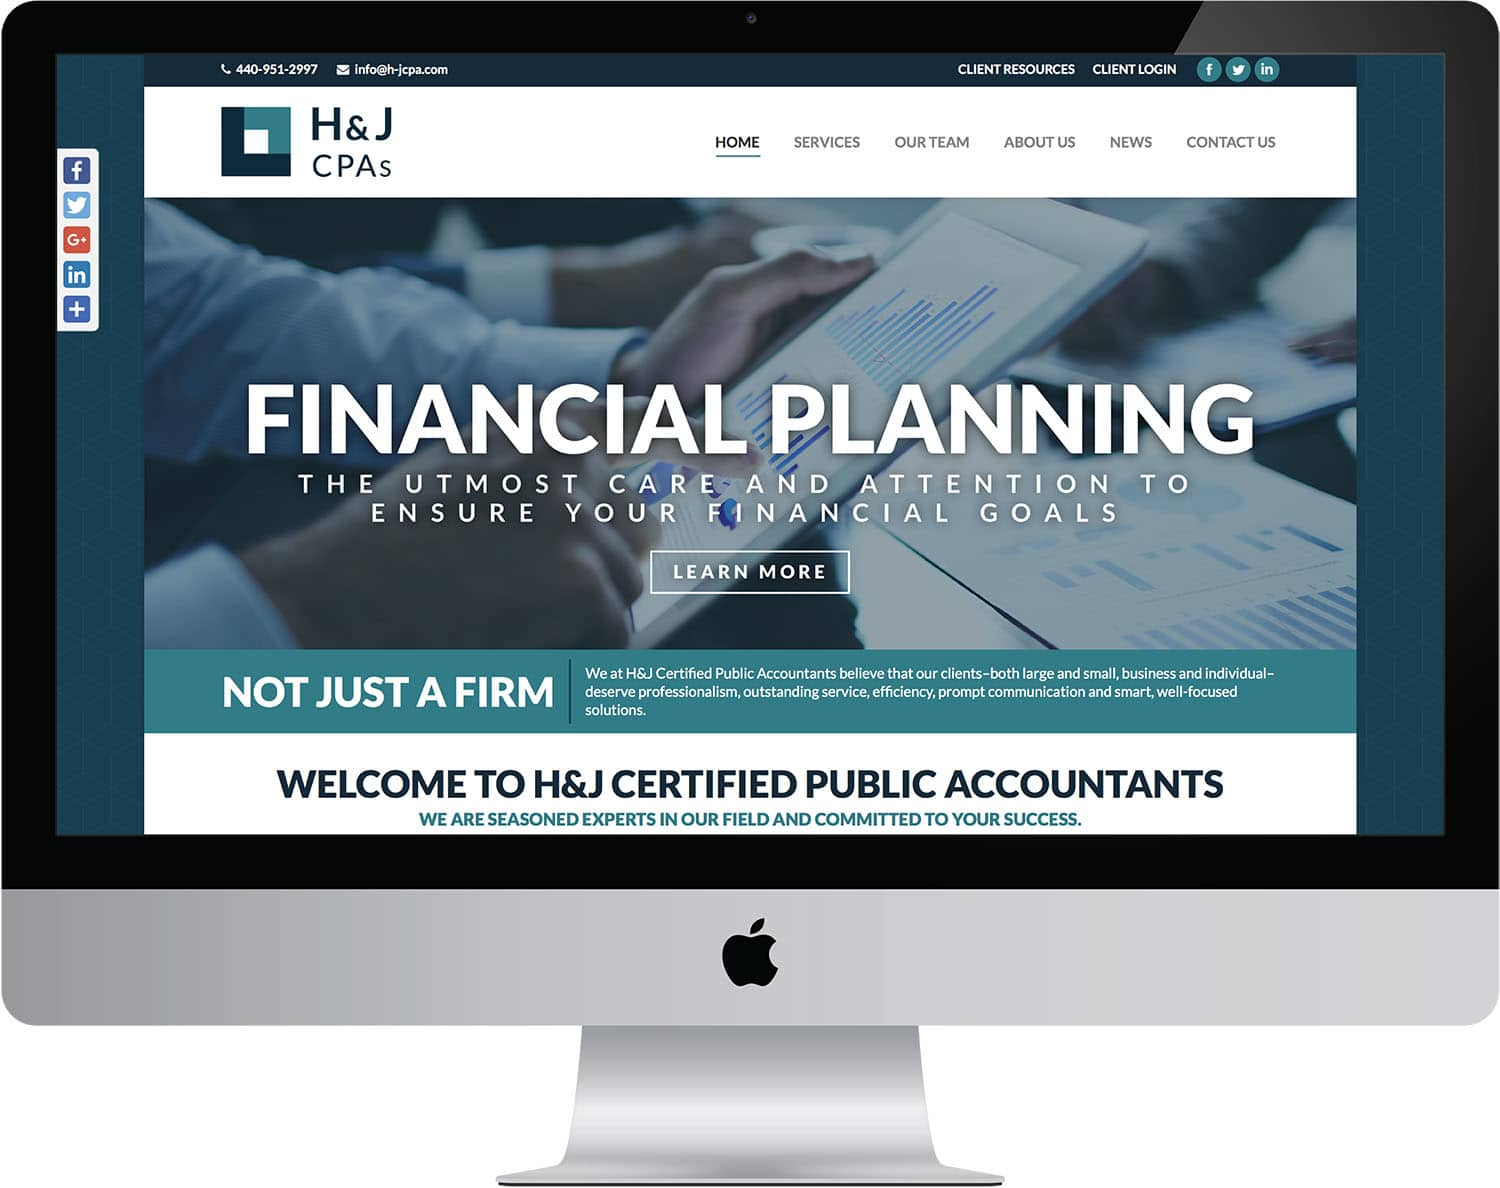 web design website development h&j cpas